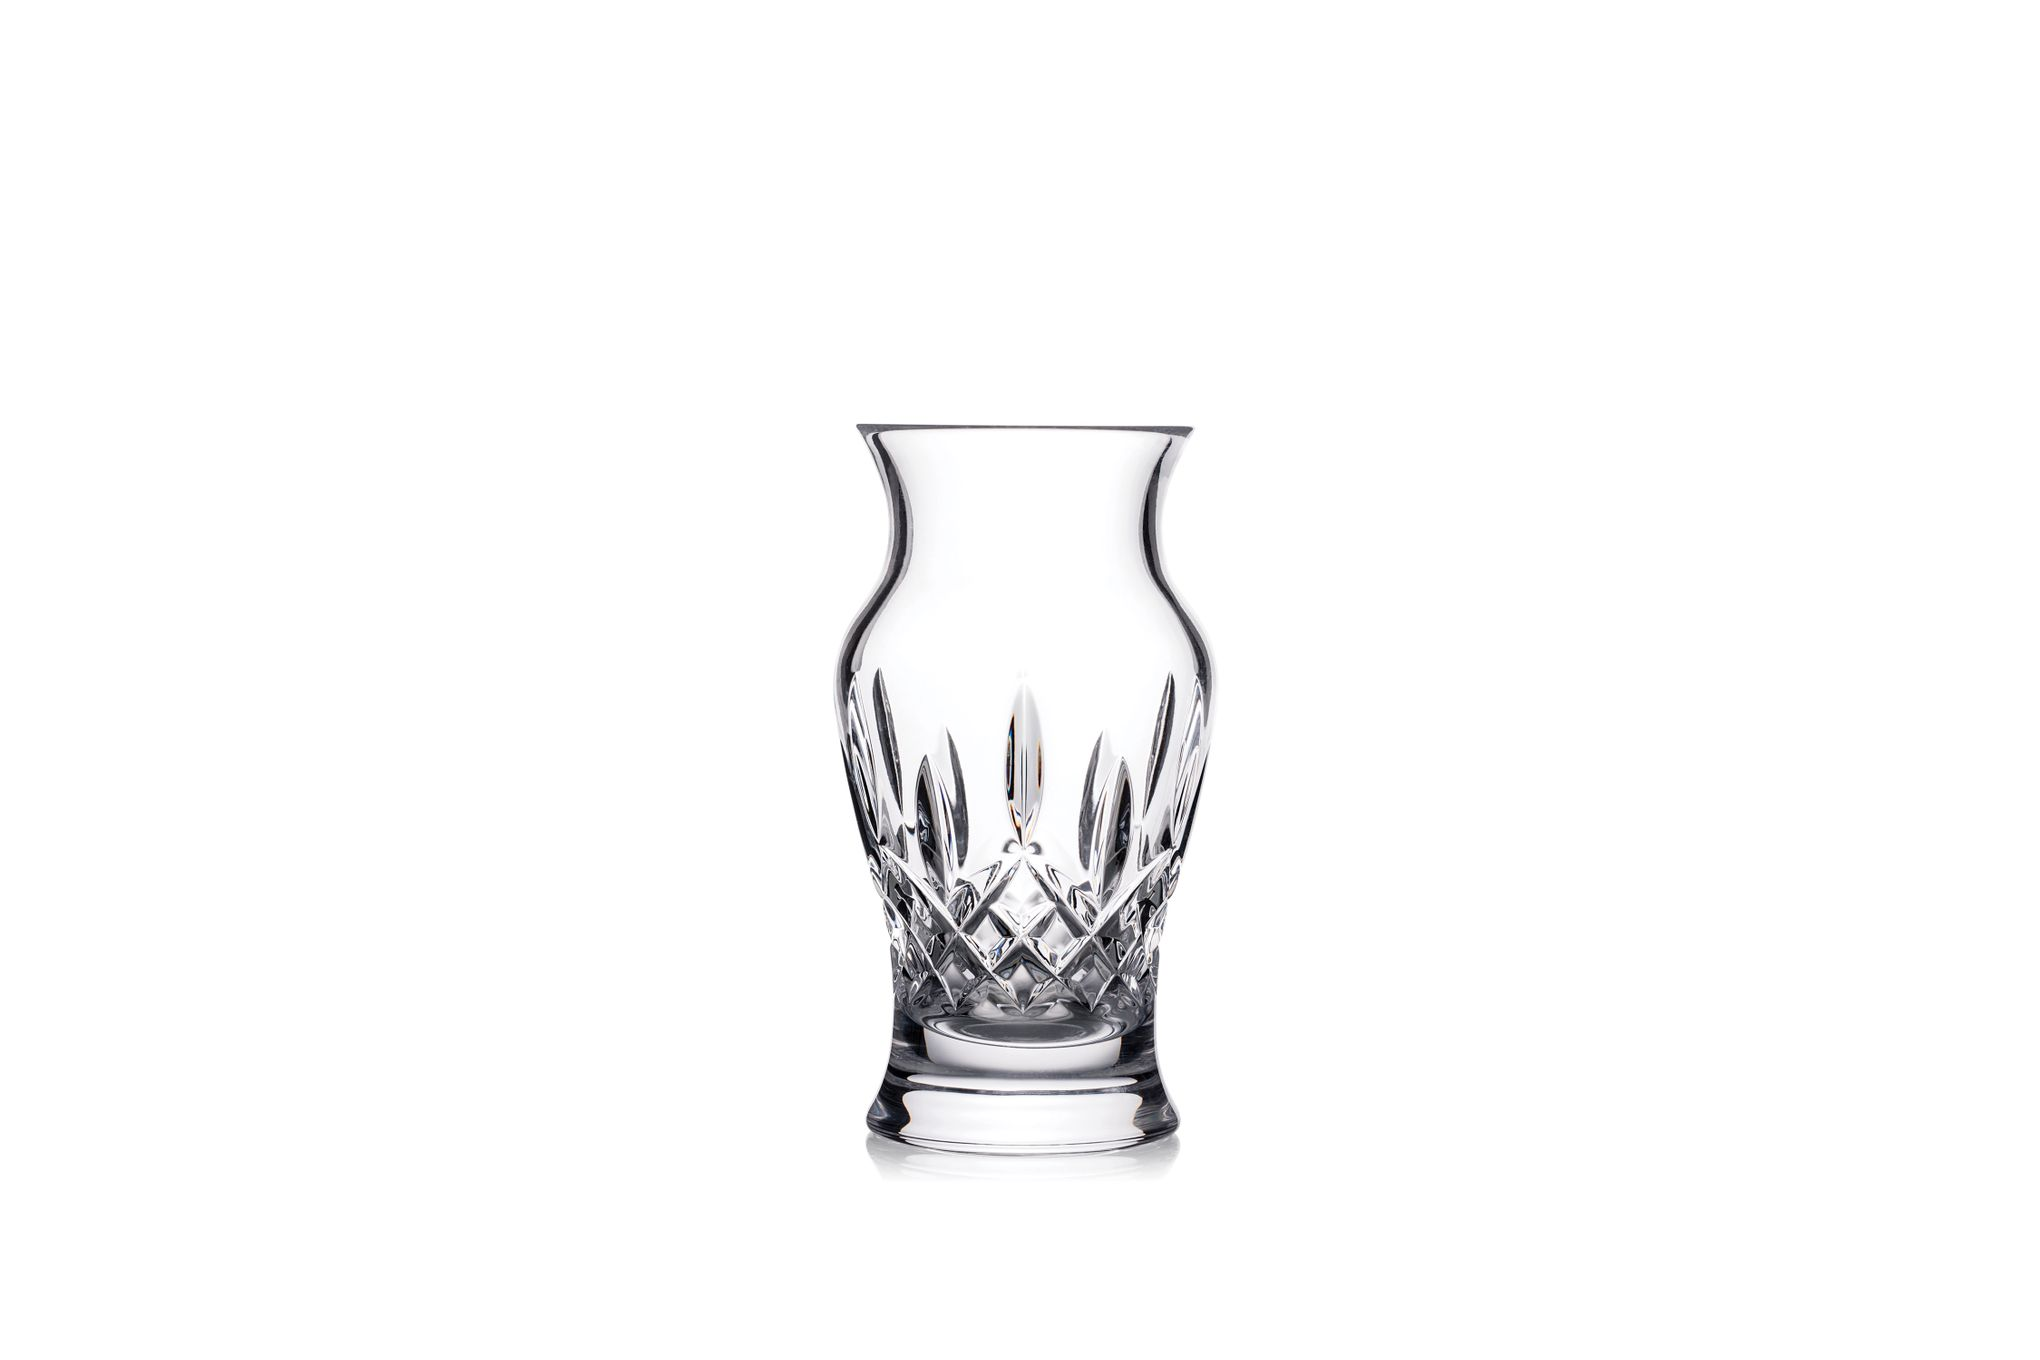 Waterford Giftology Vase Lismore 15cm thumb 2